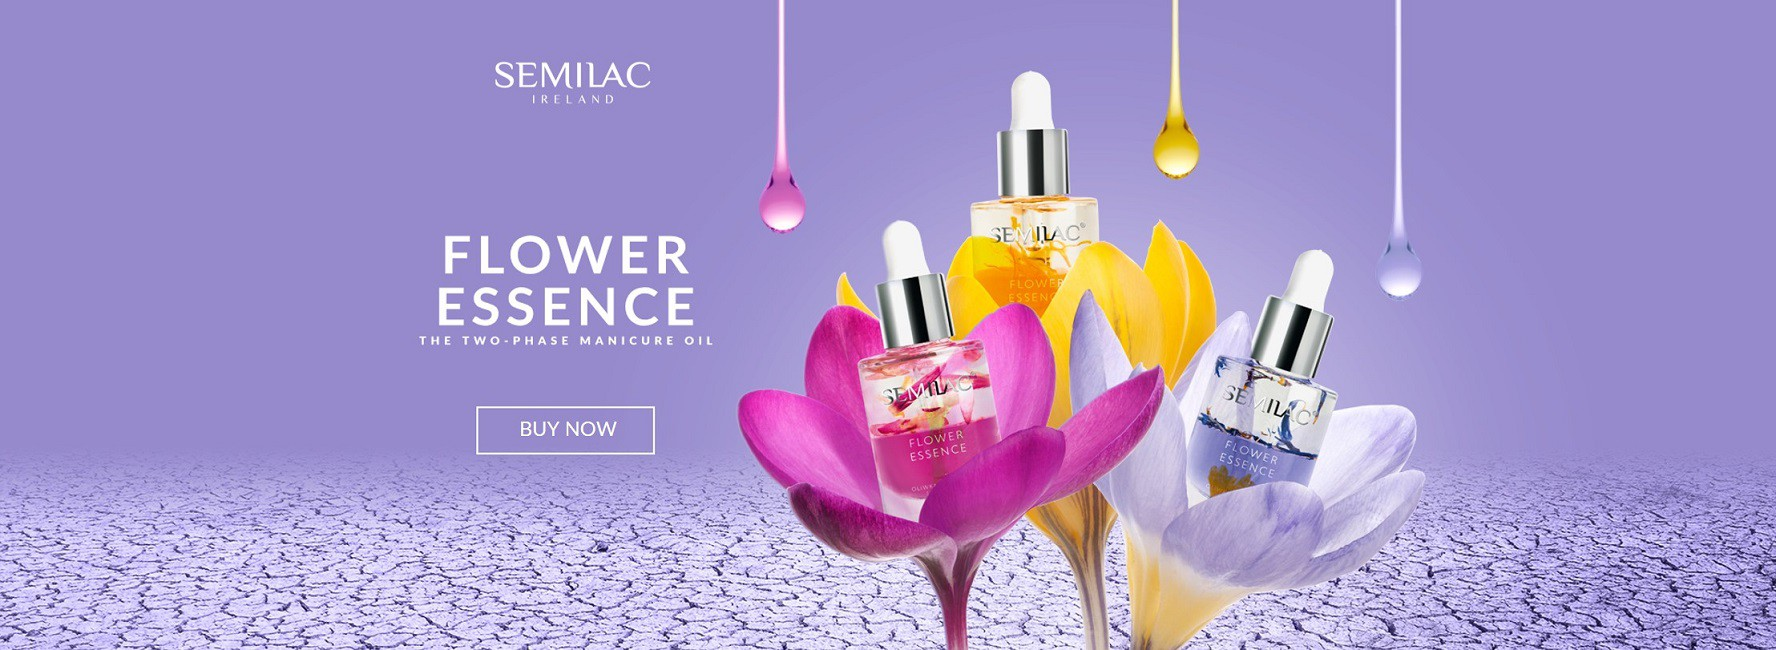 Two phase manicure oil from Semilac Ireland